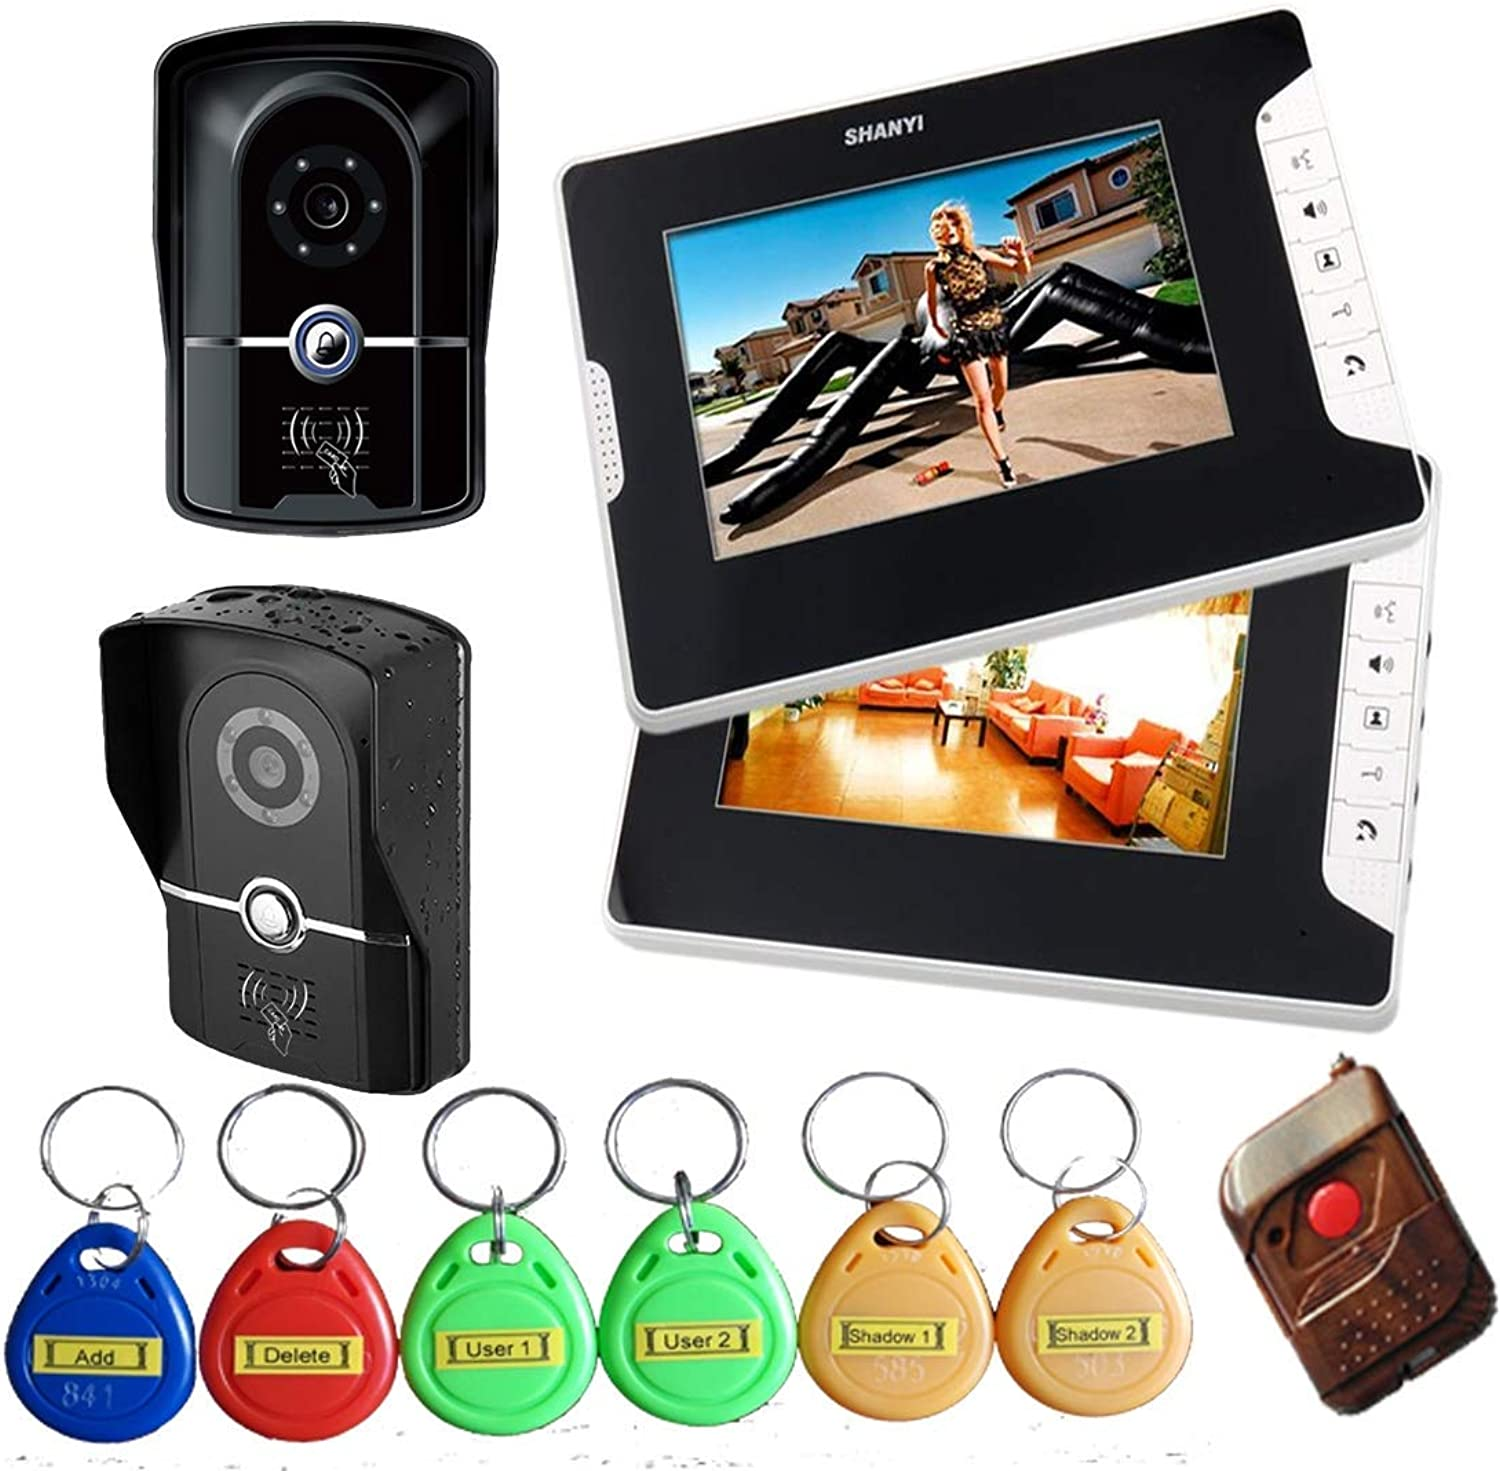 WG Video doorbell with cable, video intercom doorbell, doorbell